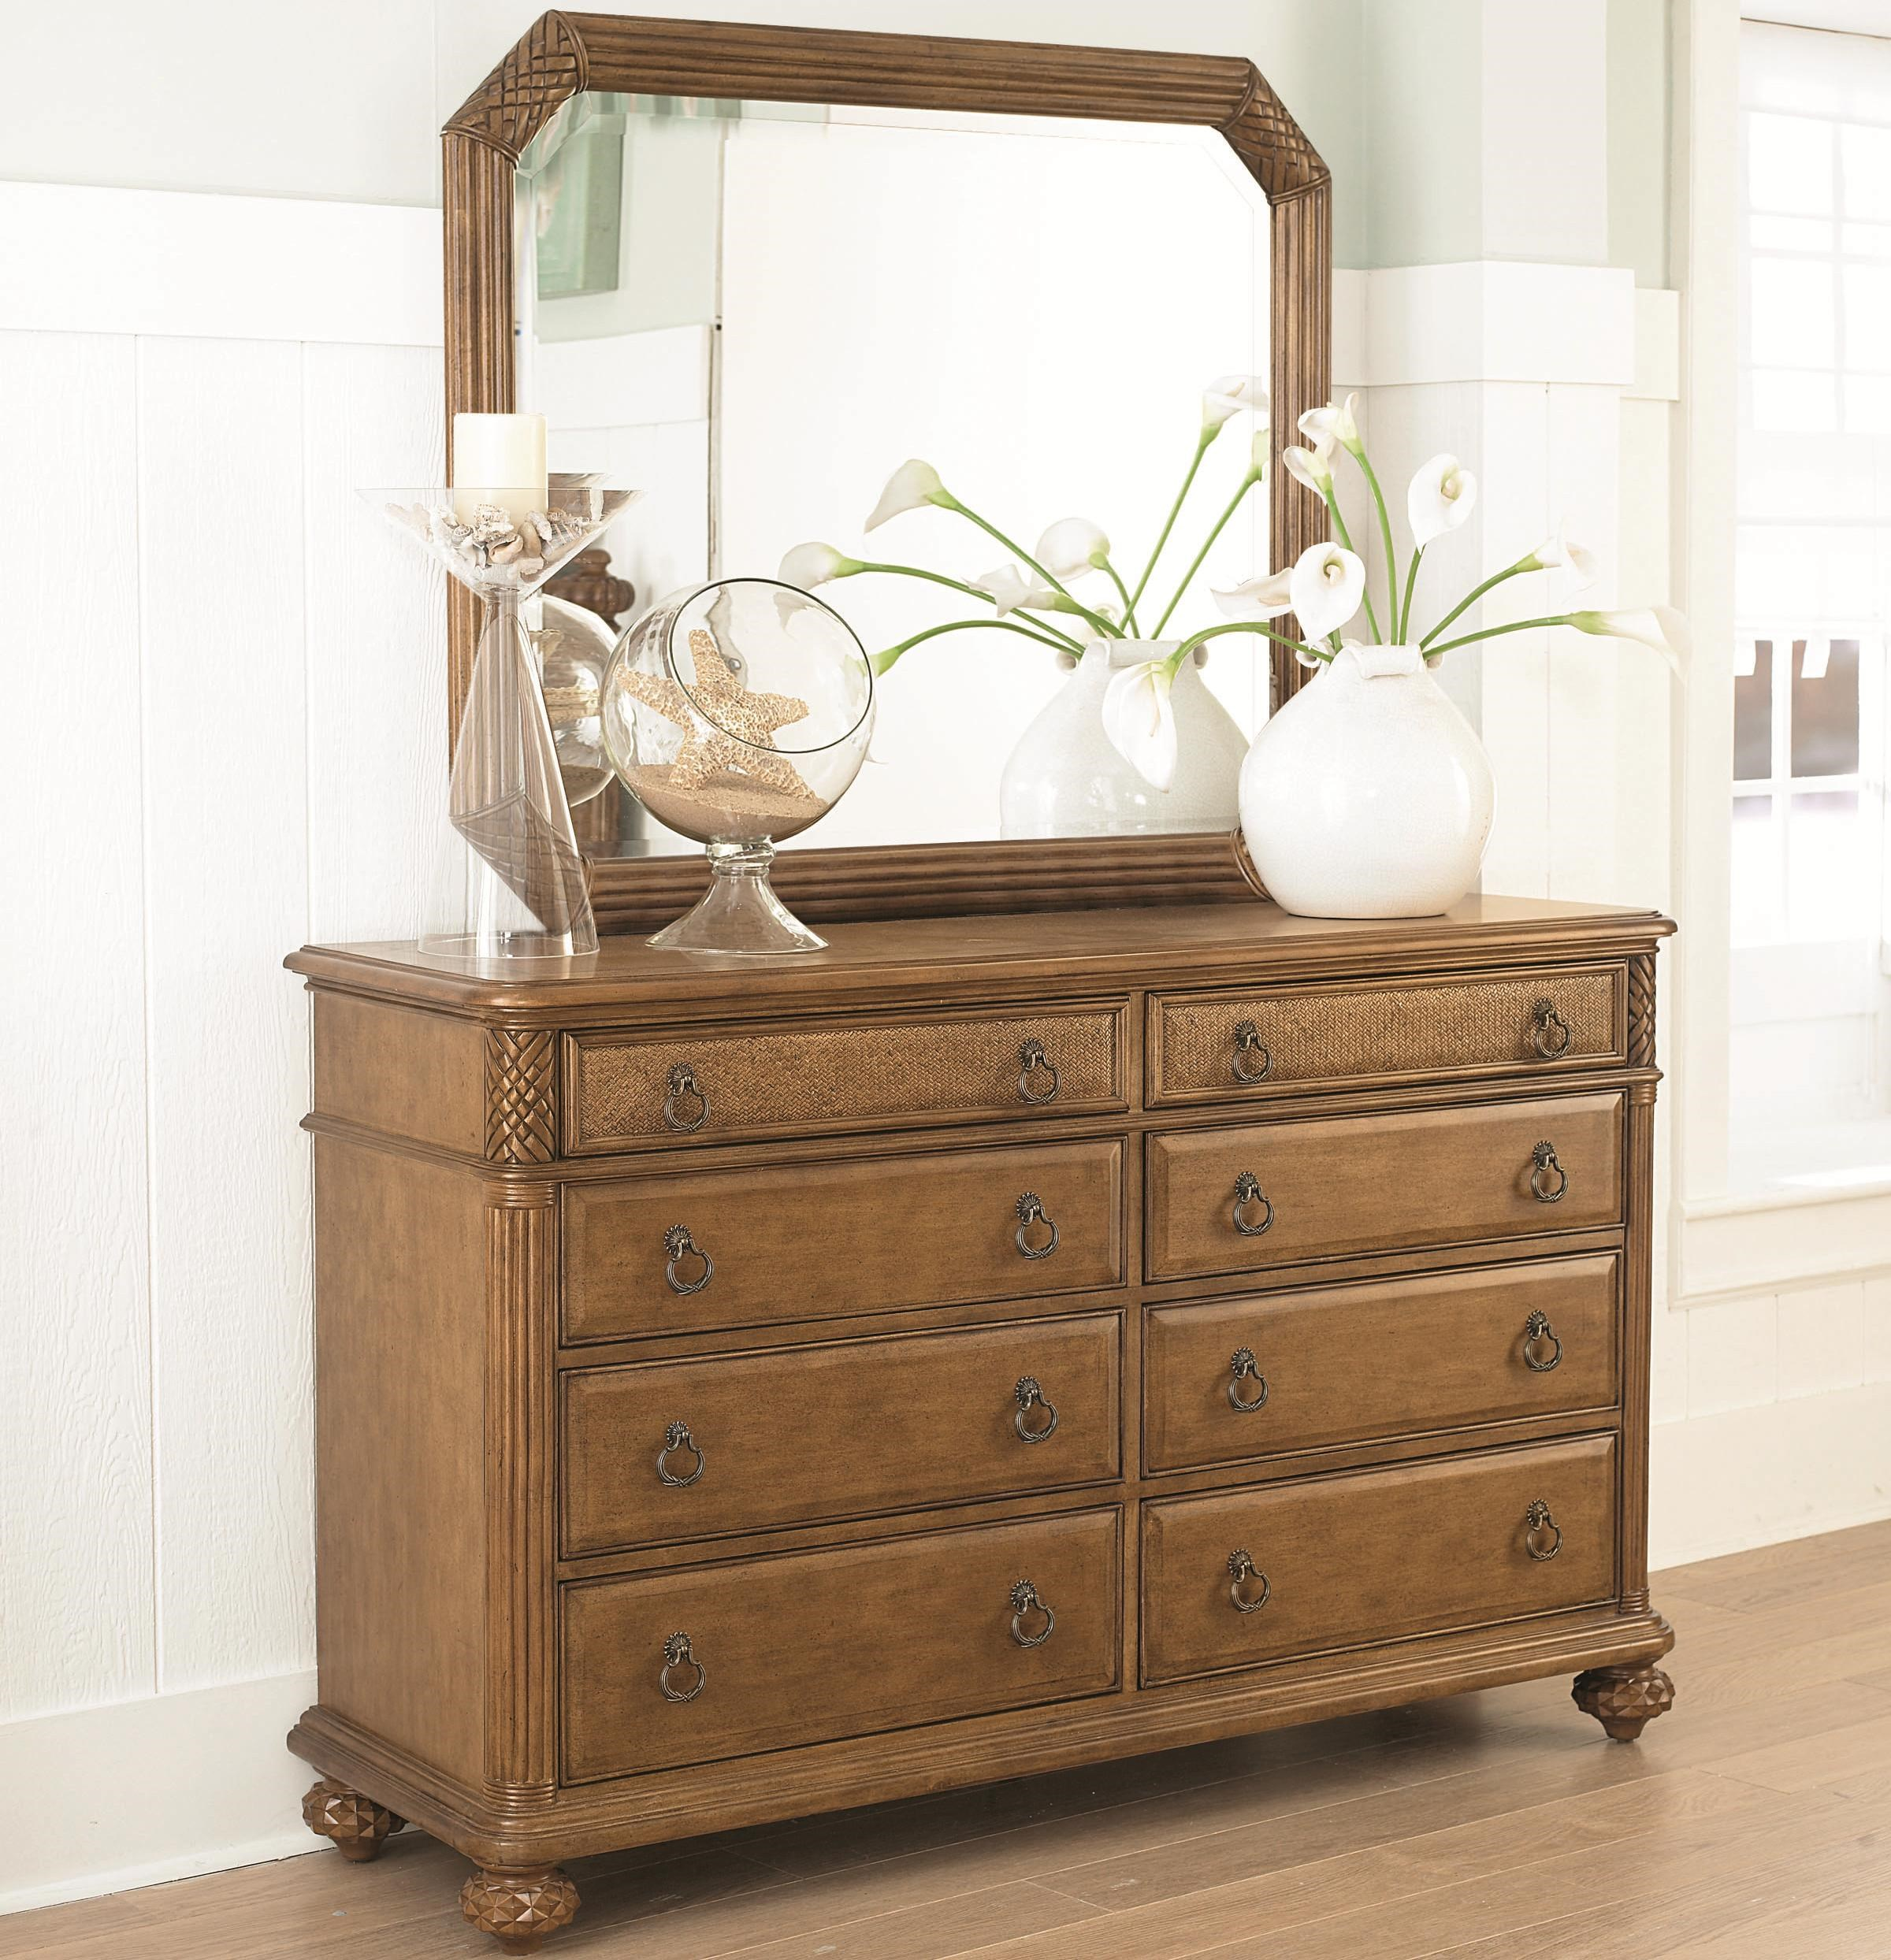 American Drew Grand Isle 8 Drawer Dresser U0026 Landscape Mirror With  Island Inspired Design